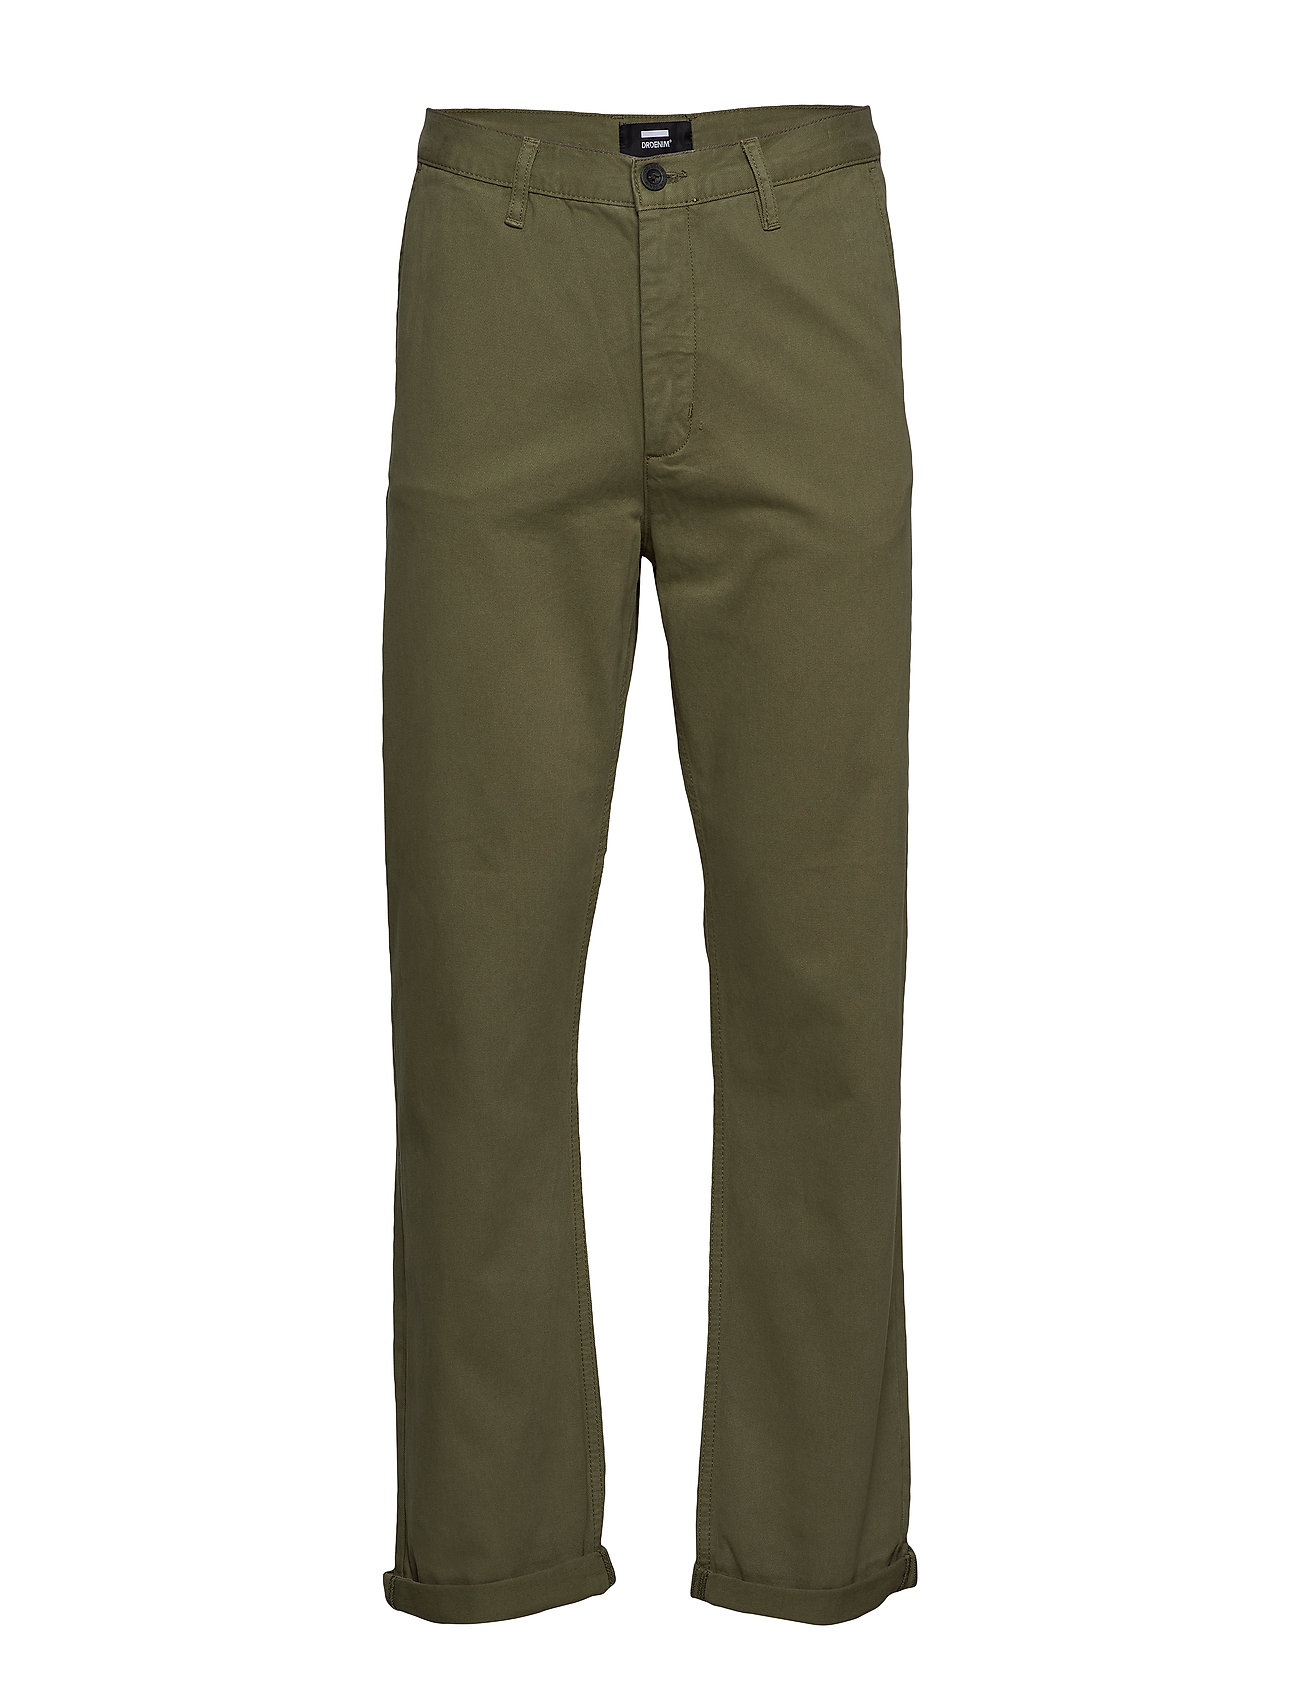 Dr. Denim Dash Chino - LIGHT EMERALD